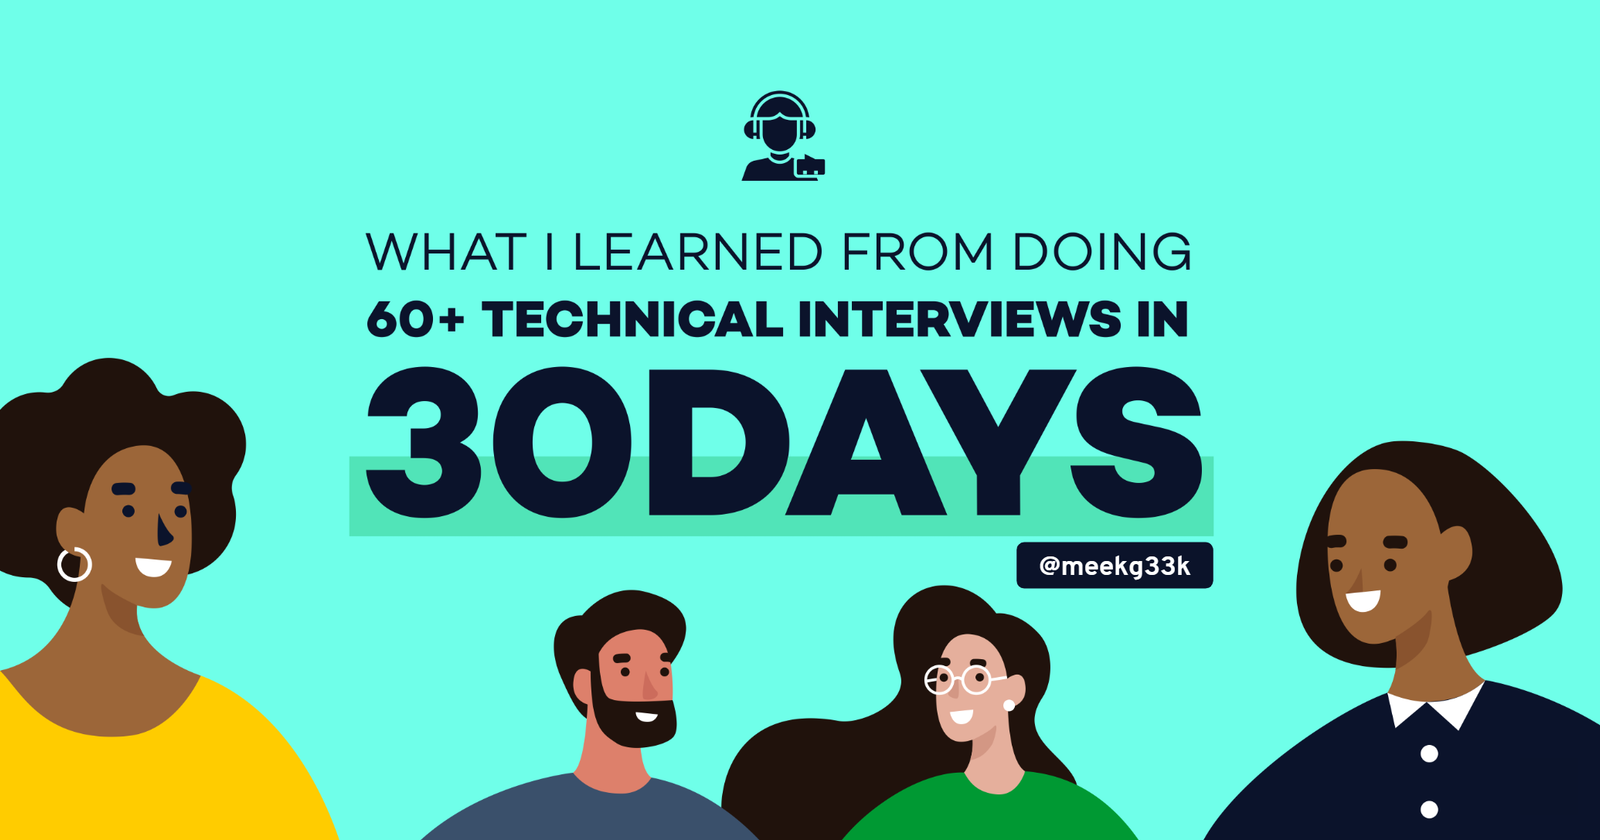 What I Learned from Doing 60+ Technical Interviews in 30 Days